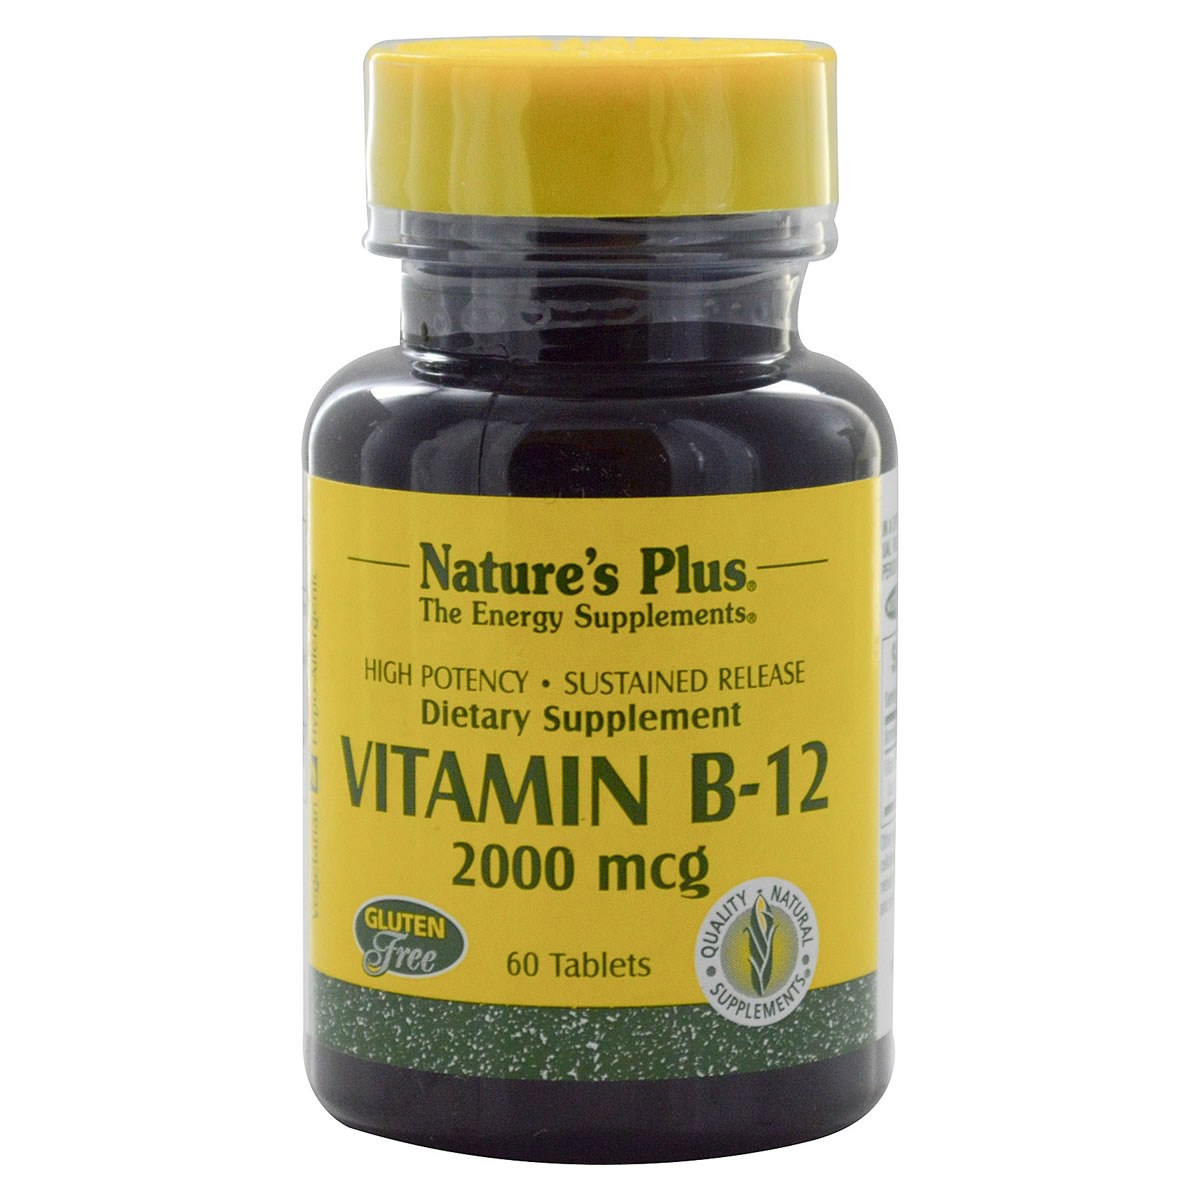 Natures Plus Vitamin B-12 2000 mcg - Sustained Release Tablets